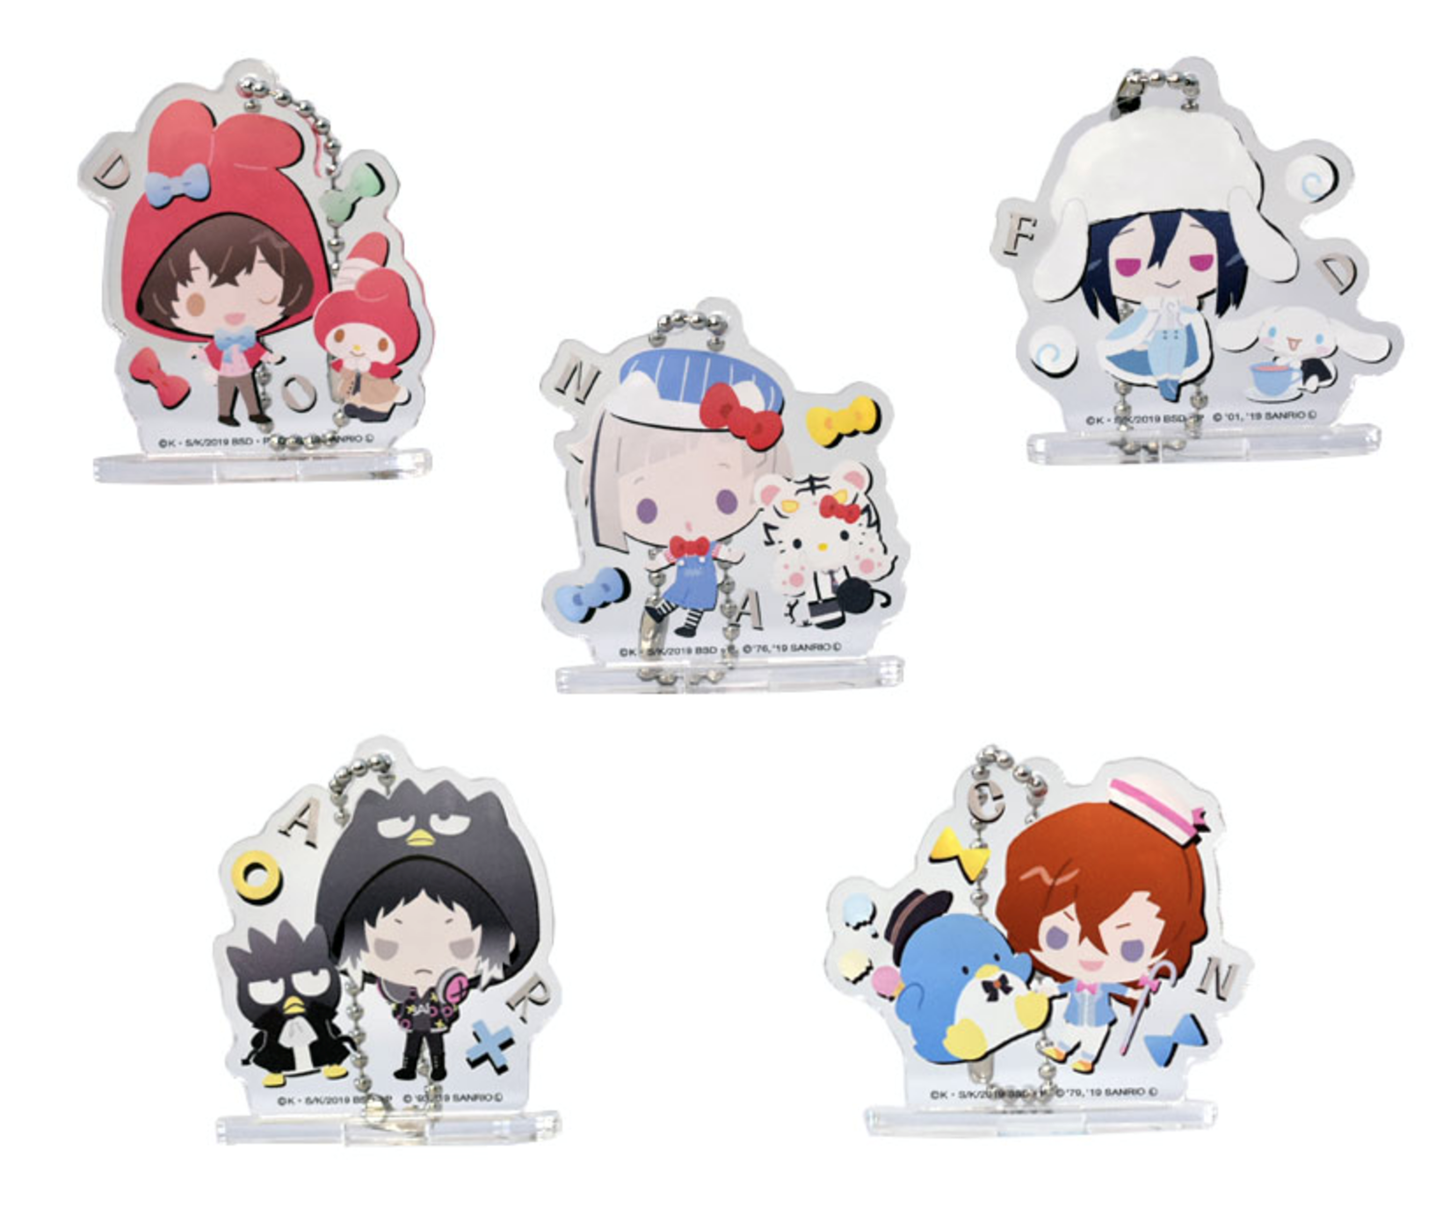 Bungou Stray Dogs x Sanrio Characters Collaboration Goods Chibi Acrylic  Stand Keychains BLIND PACKS